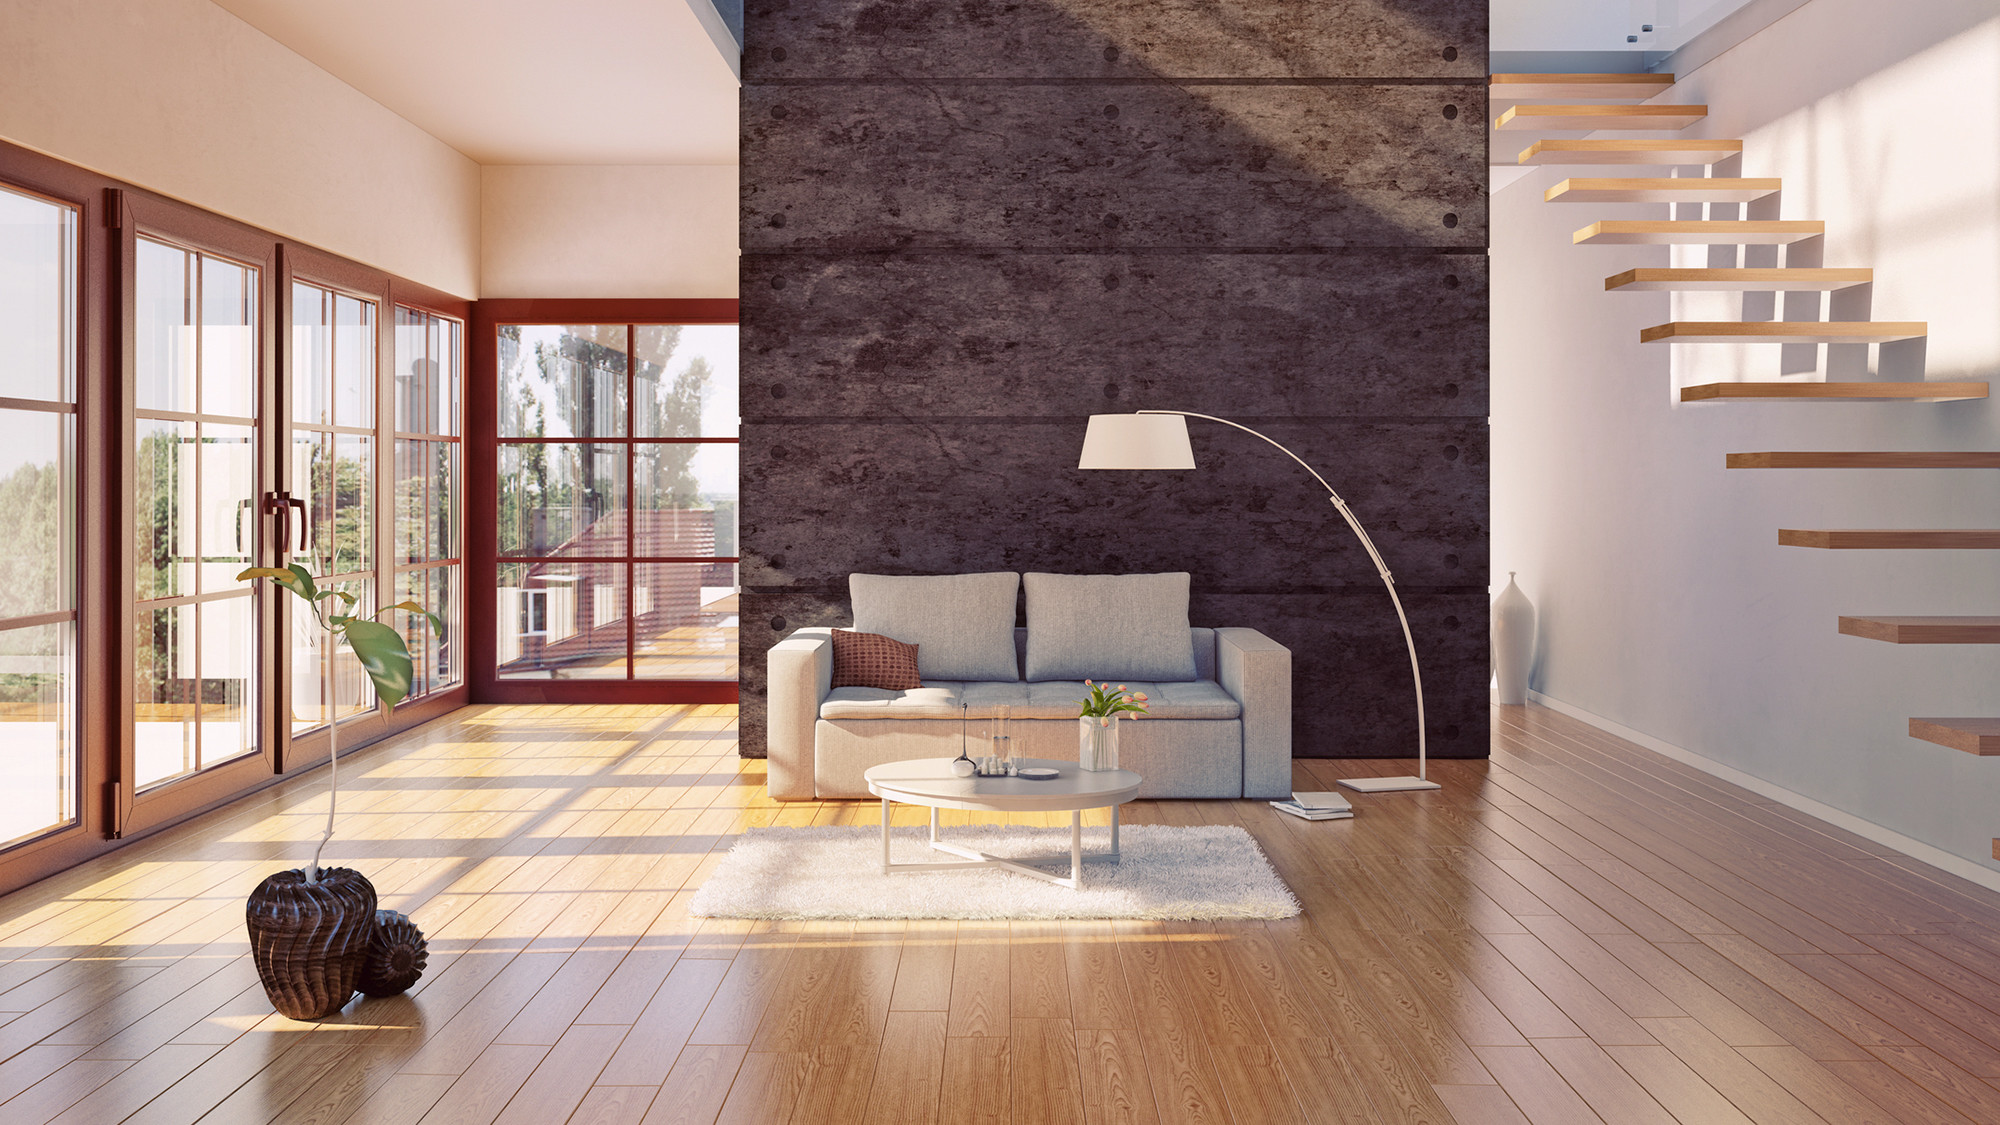 how to clean engineered hardwood floors after installation of do hardwood floors provide the best return on investment realtor coma regarding hardwood floors investment